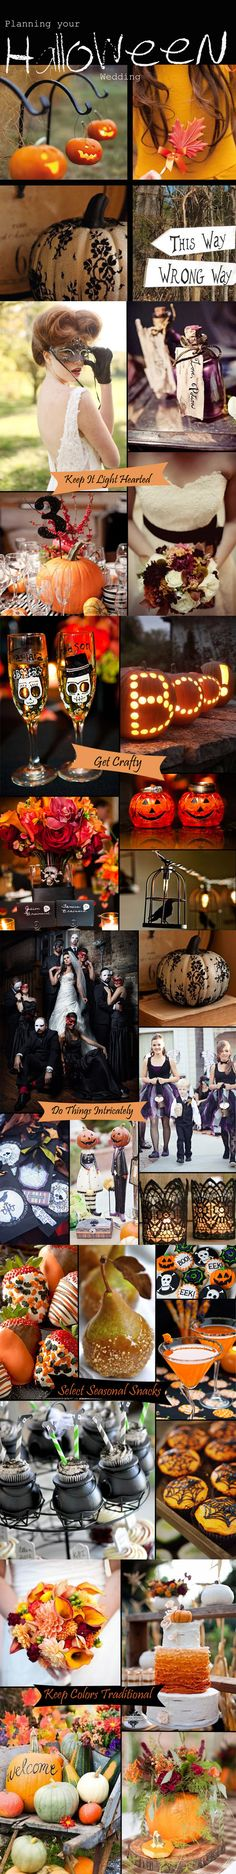 Halloween wedding ideas~ #Halloween #wedding